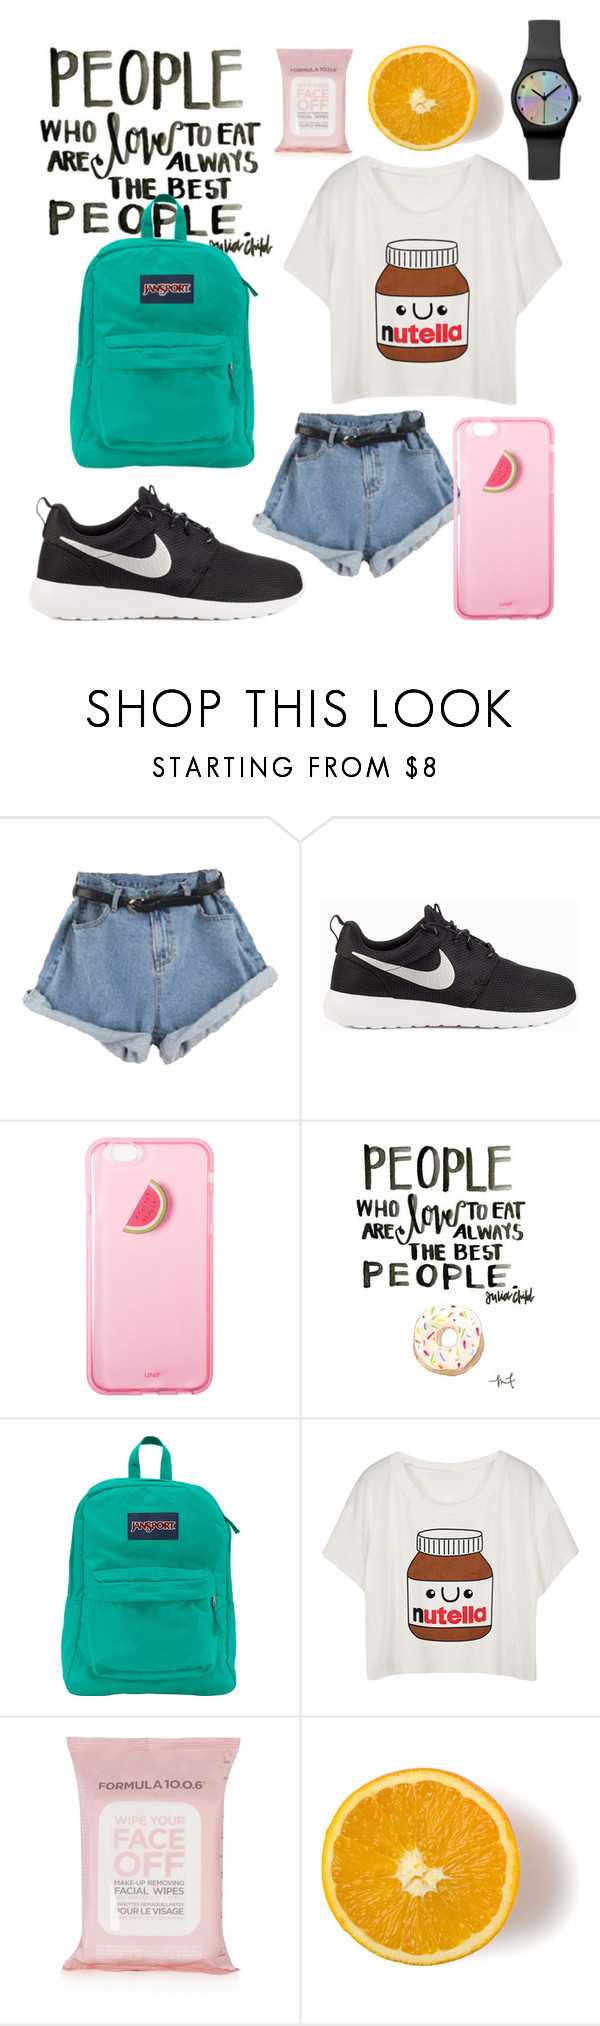 """""""hot  day"""" by senlinn ❤ liked on Polyvore featuring beauty, NIKE, JanSport and Topshop"""